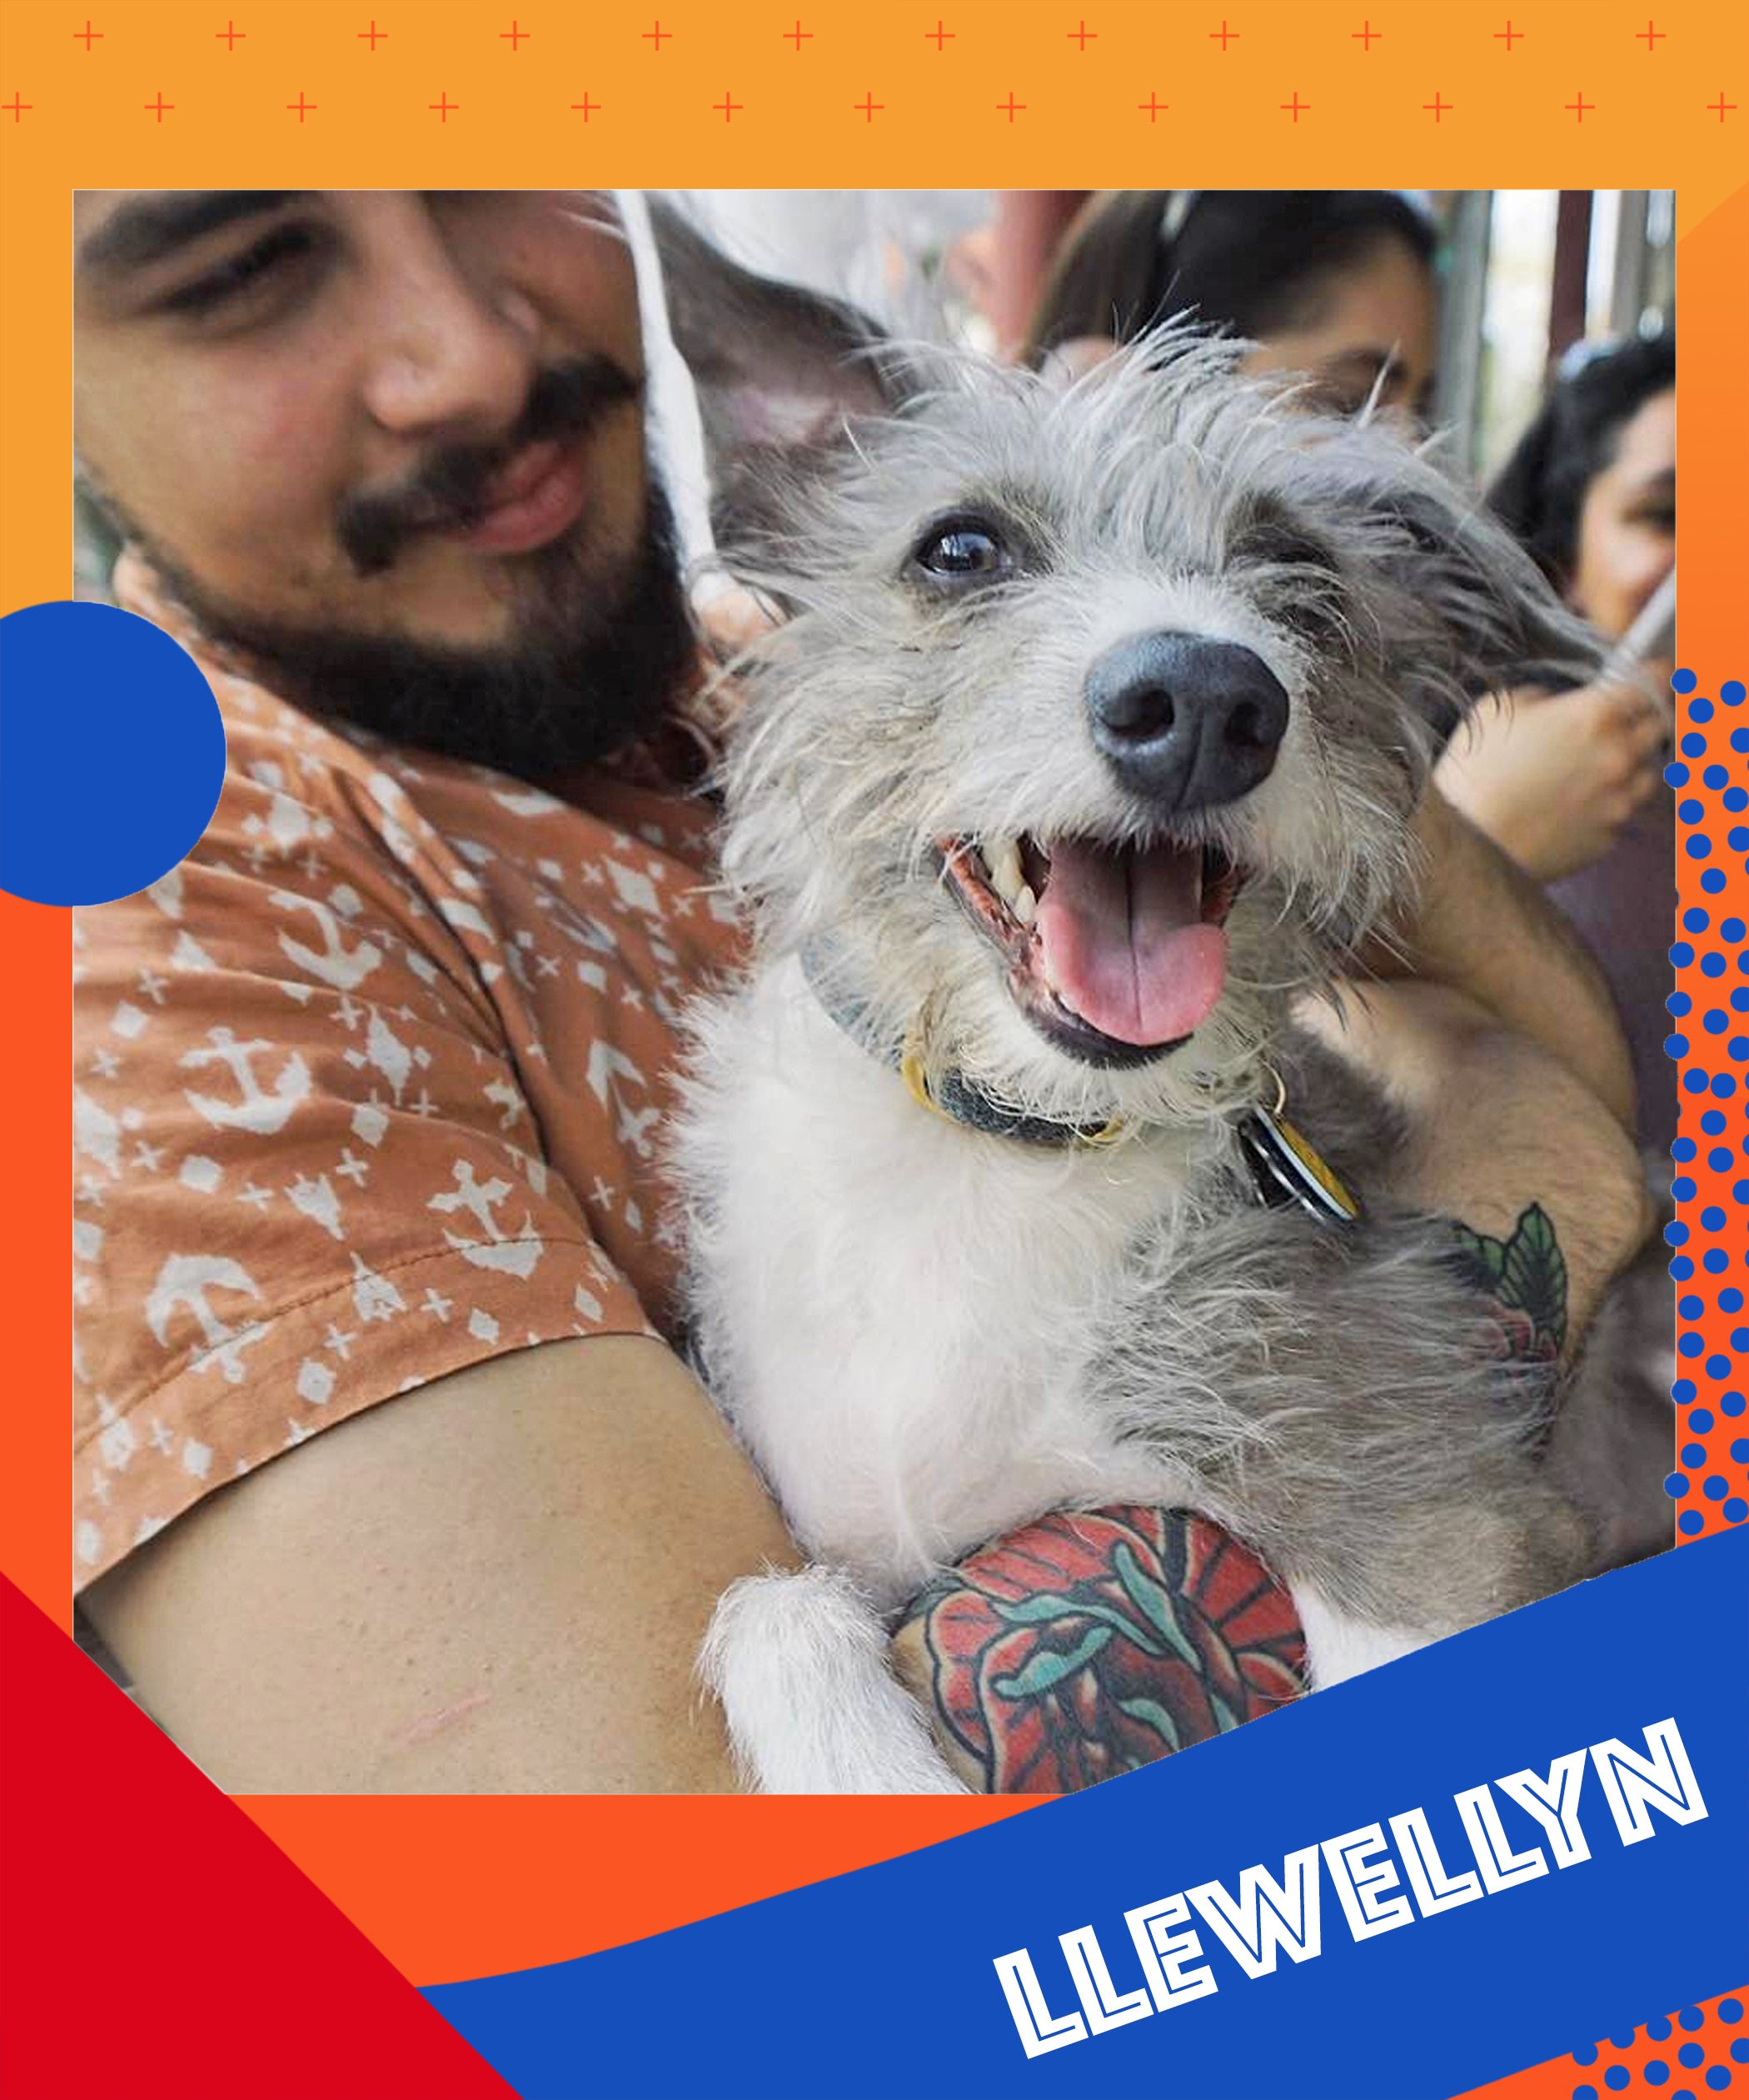 Meet Our Refinery29 Employee Pets Dogs Cats More